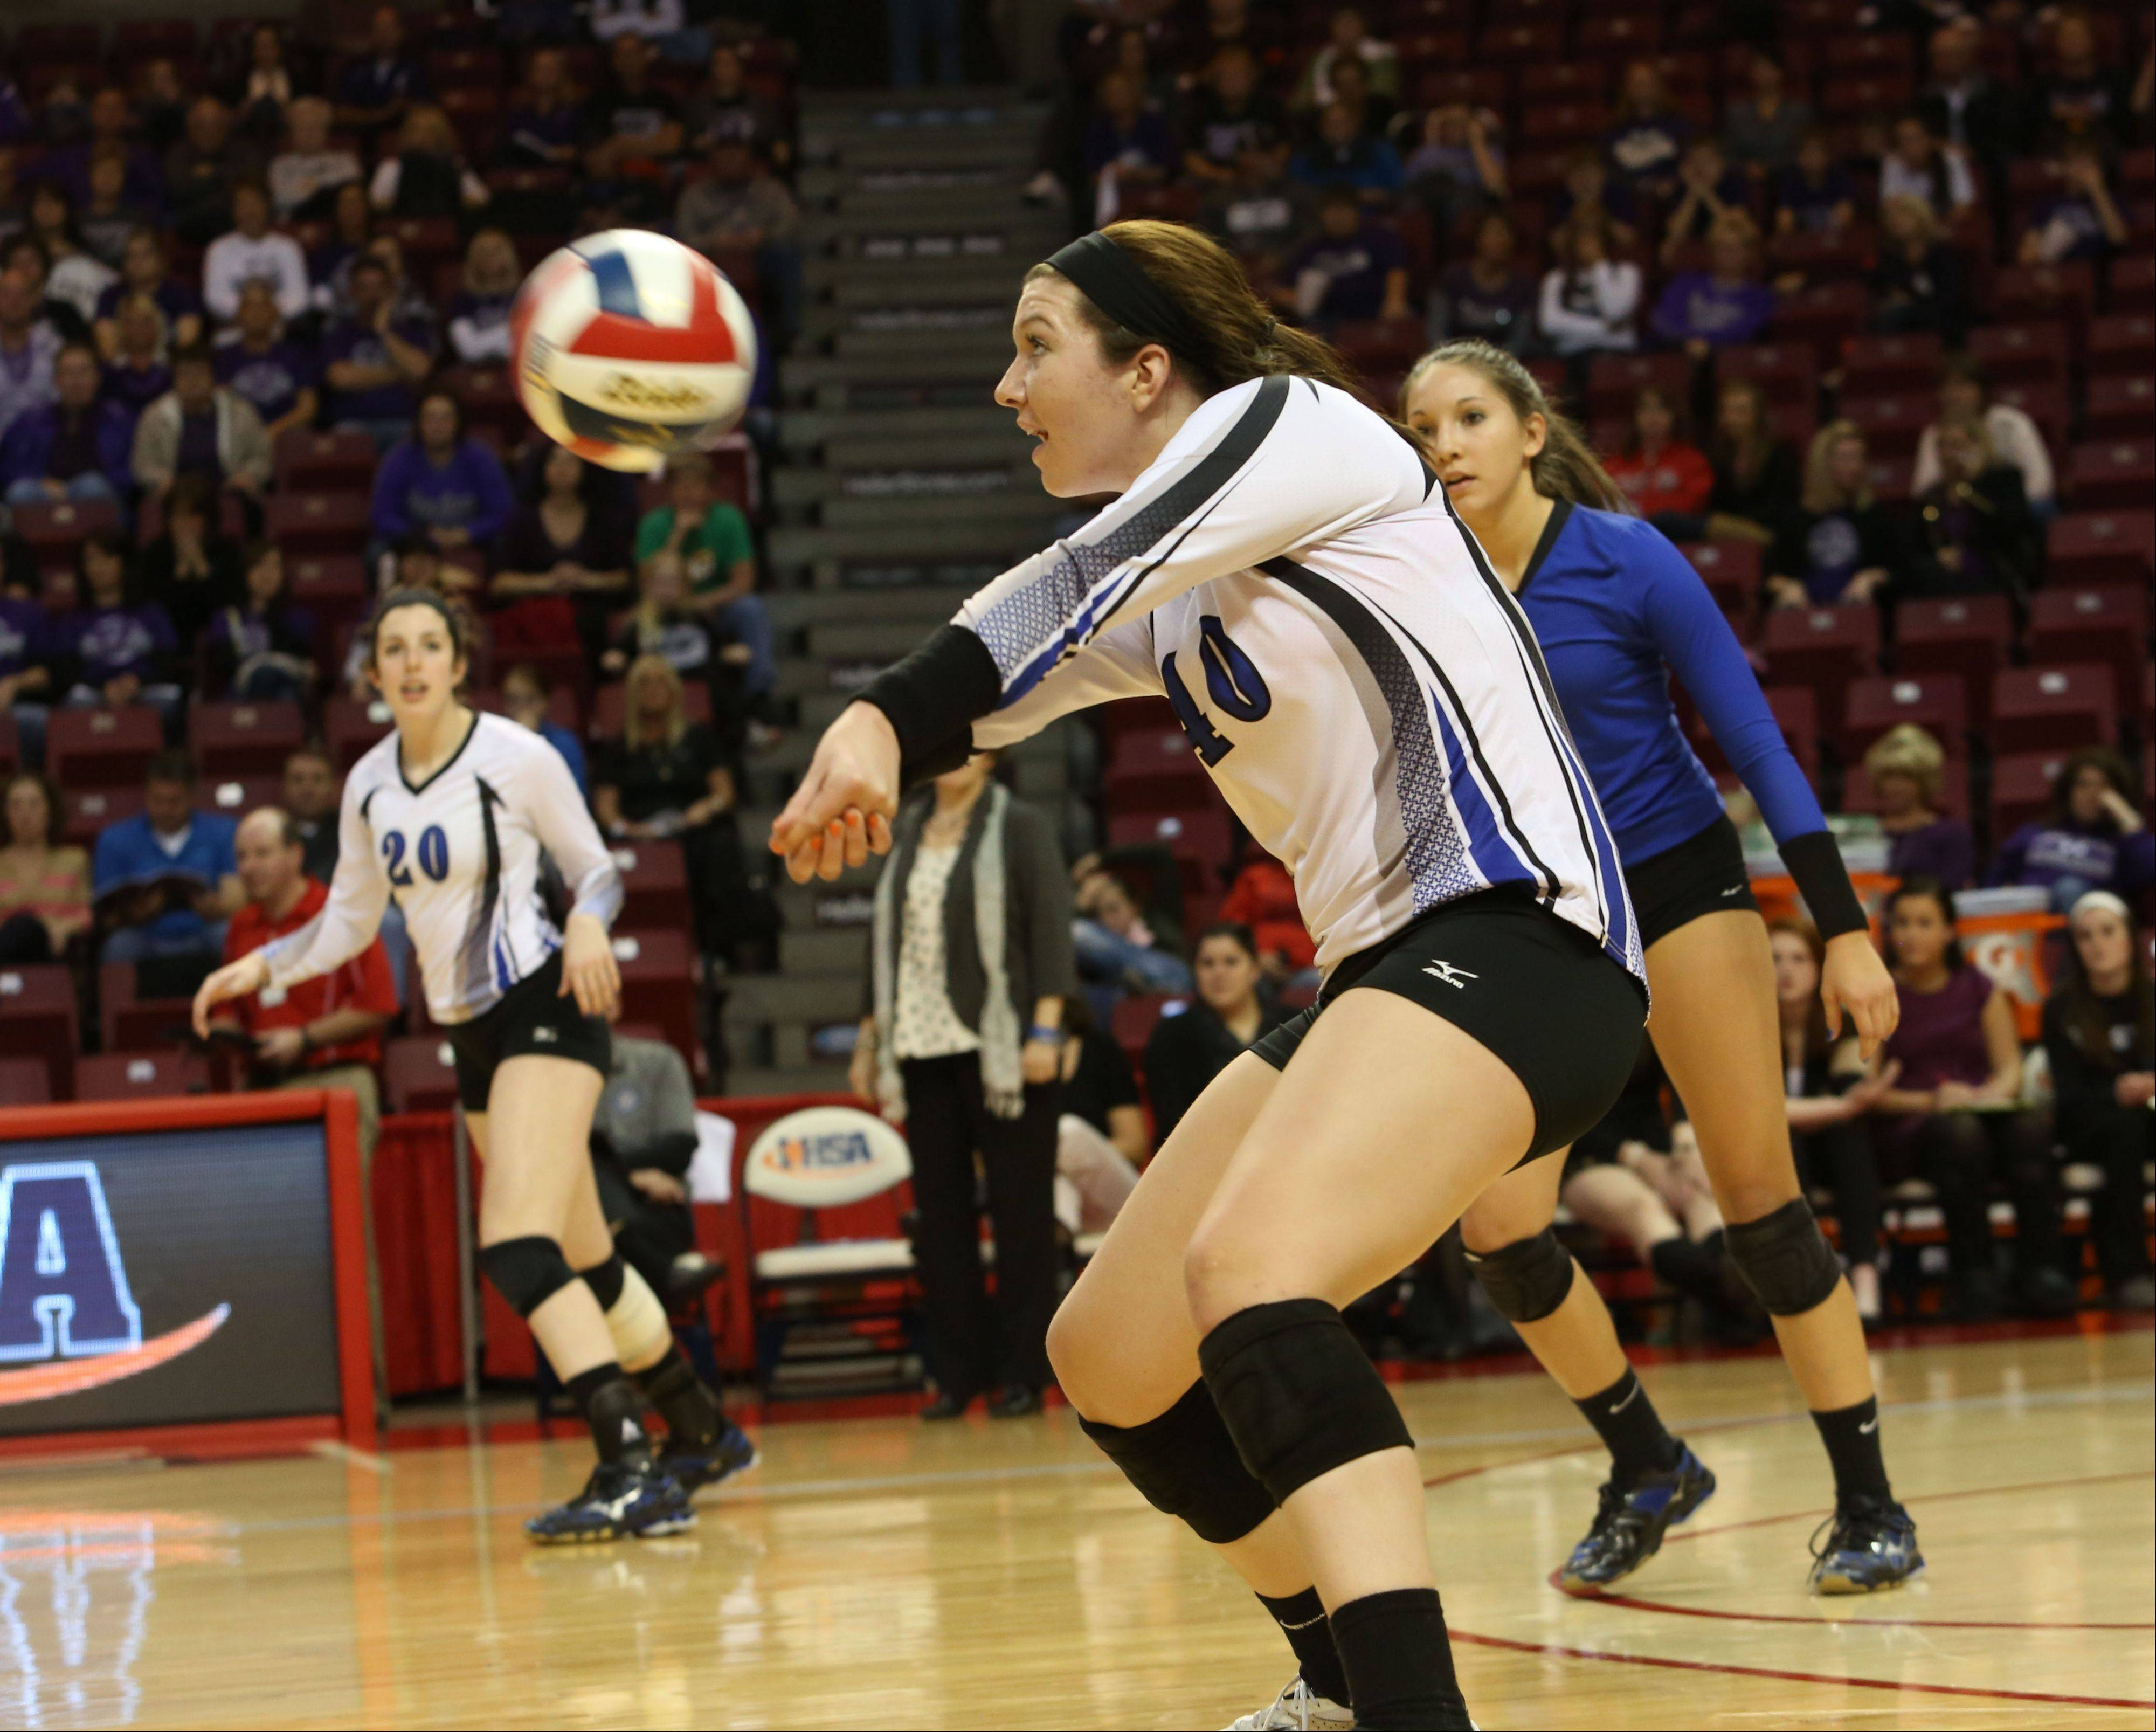 Molly Haggerty of St. Francis returns a serve.